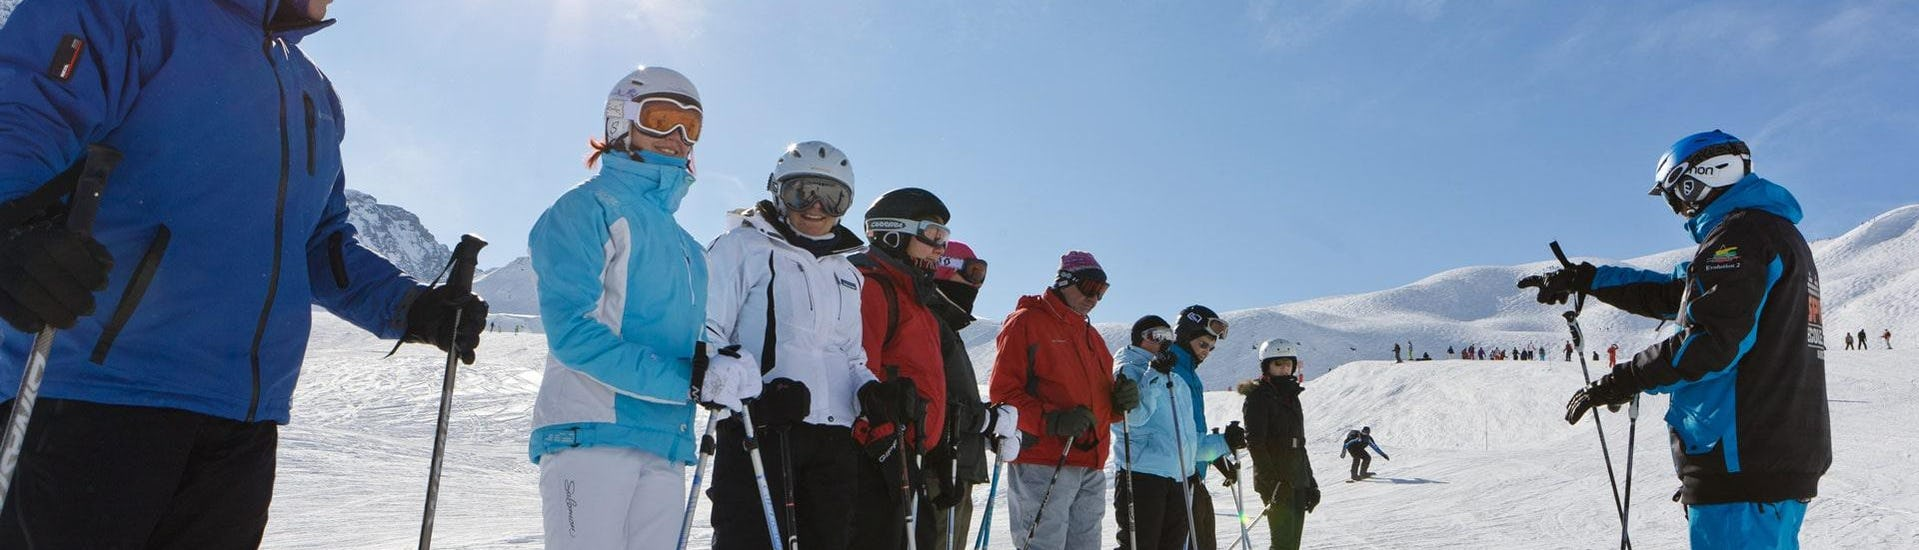 Ski Lessons for Adults - High Season - Arc 1950